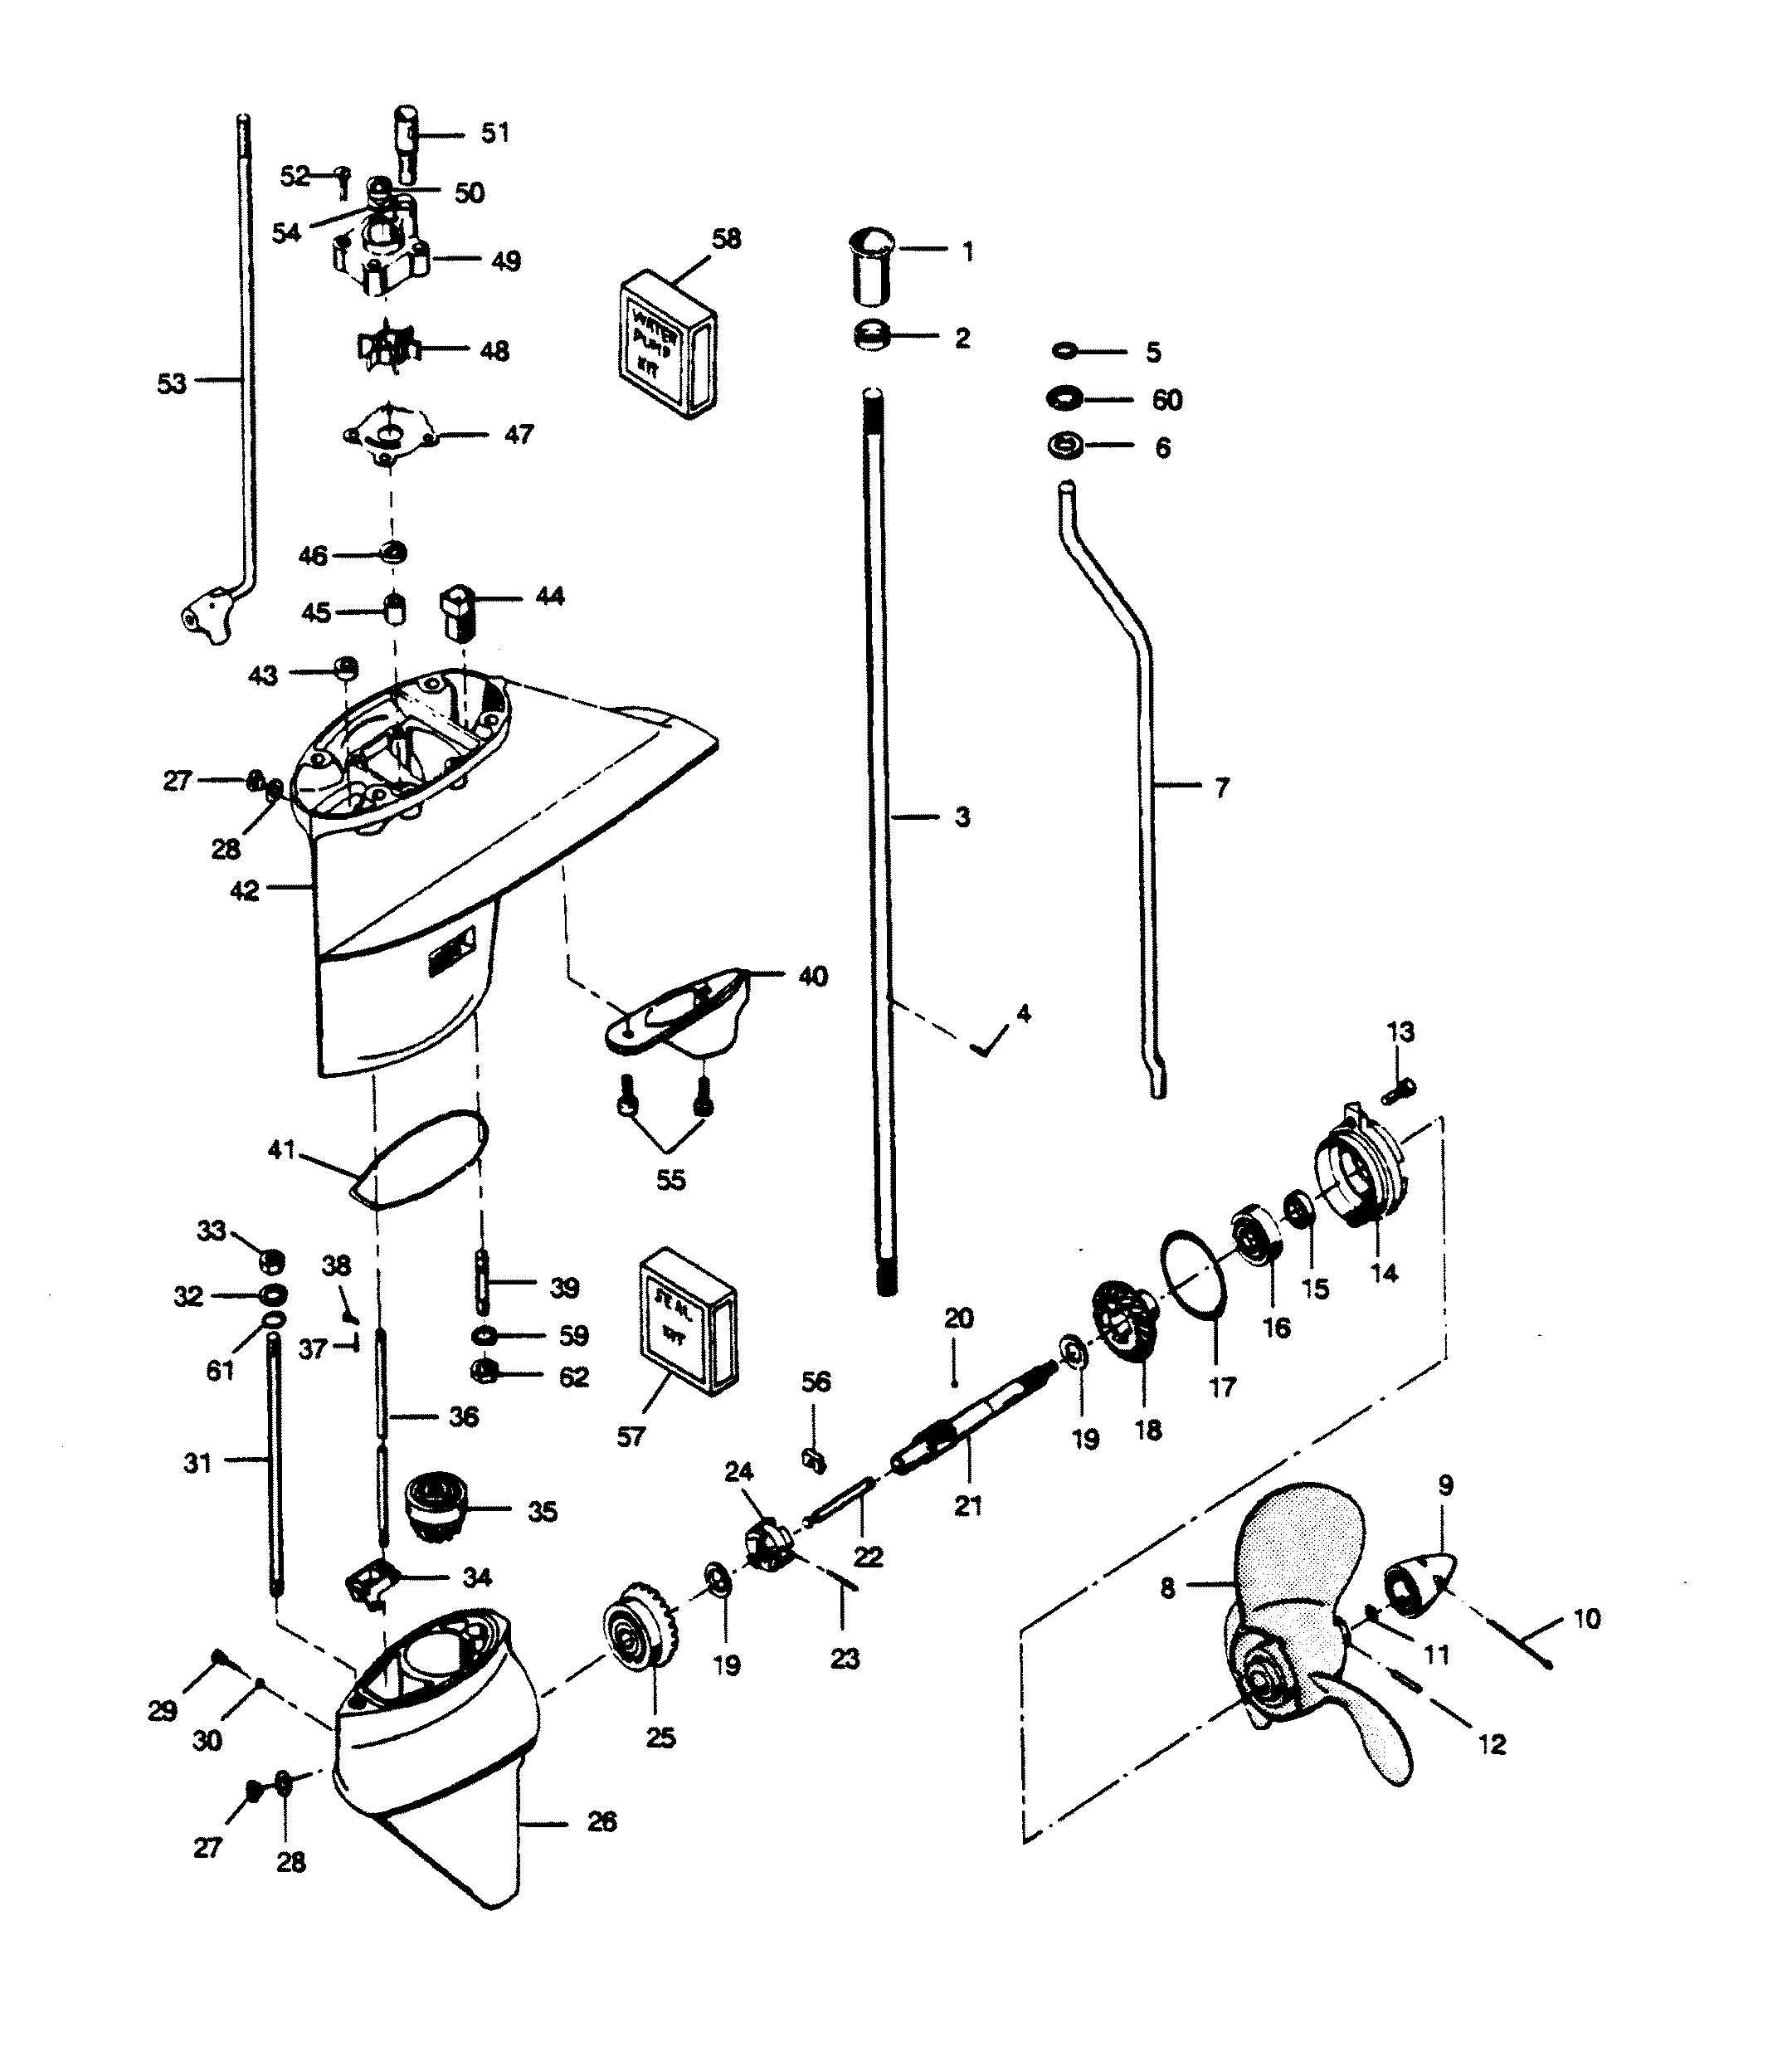 50 hp 1989 force outboard 507f9d electrical components diagram andКаталог запчастей force 50 h p (1989) 508f9c \\u2014 Запасные части50 hp 1989 force